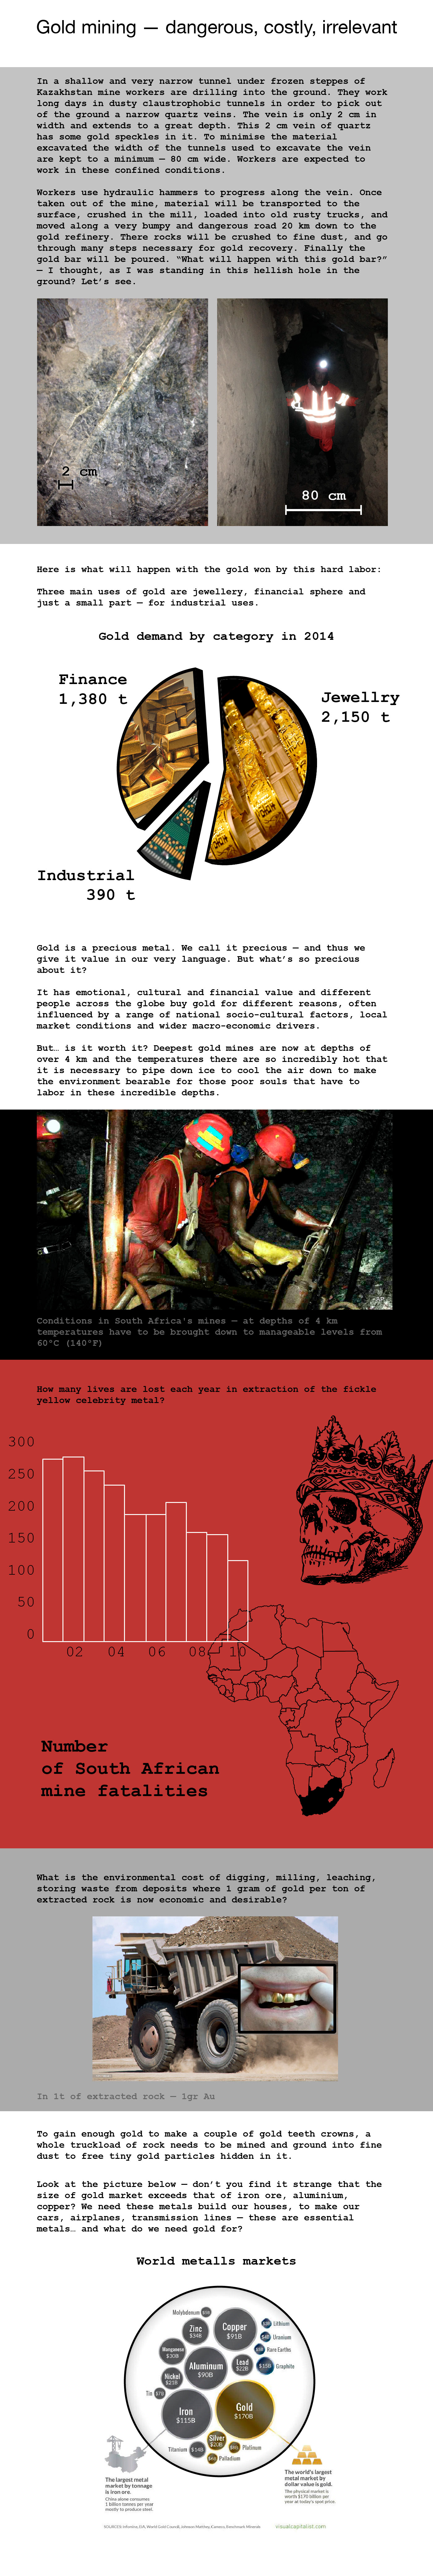 Gold mining - dangerous, costly, irrelevant